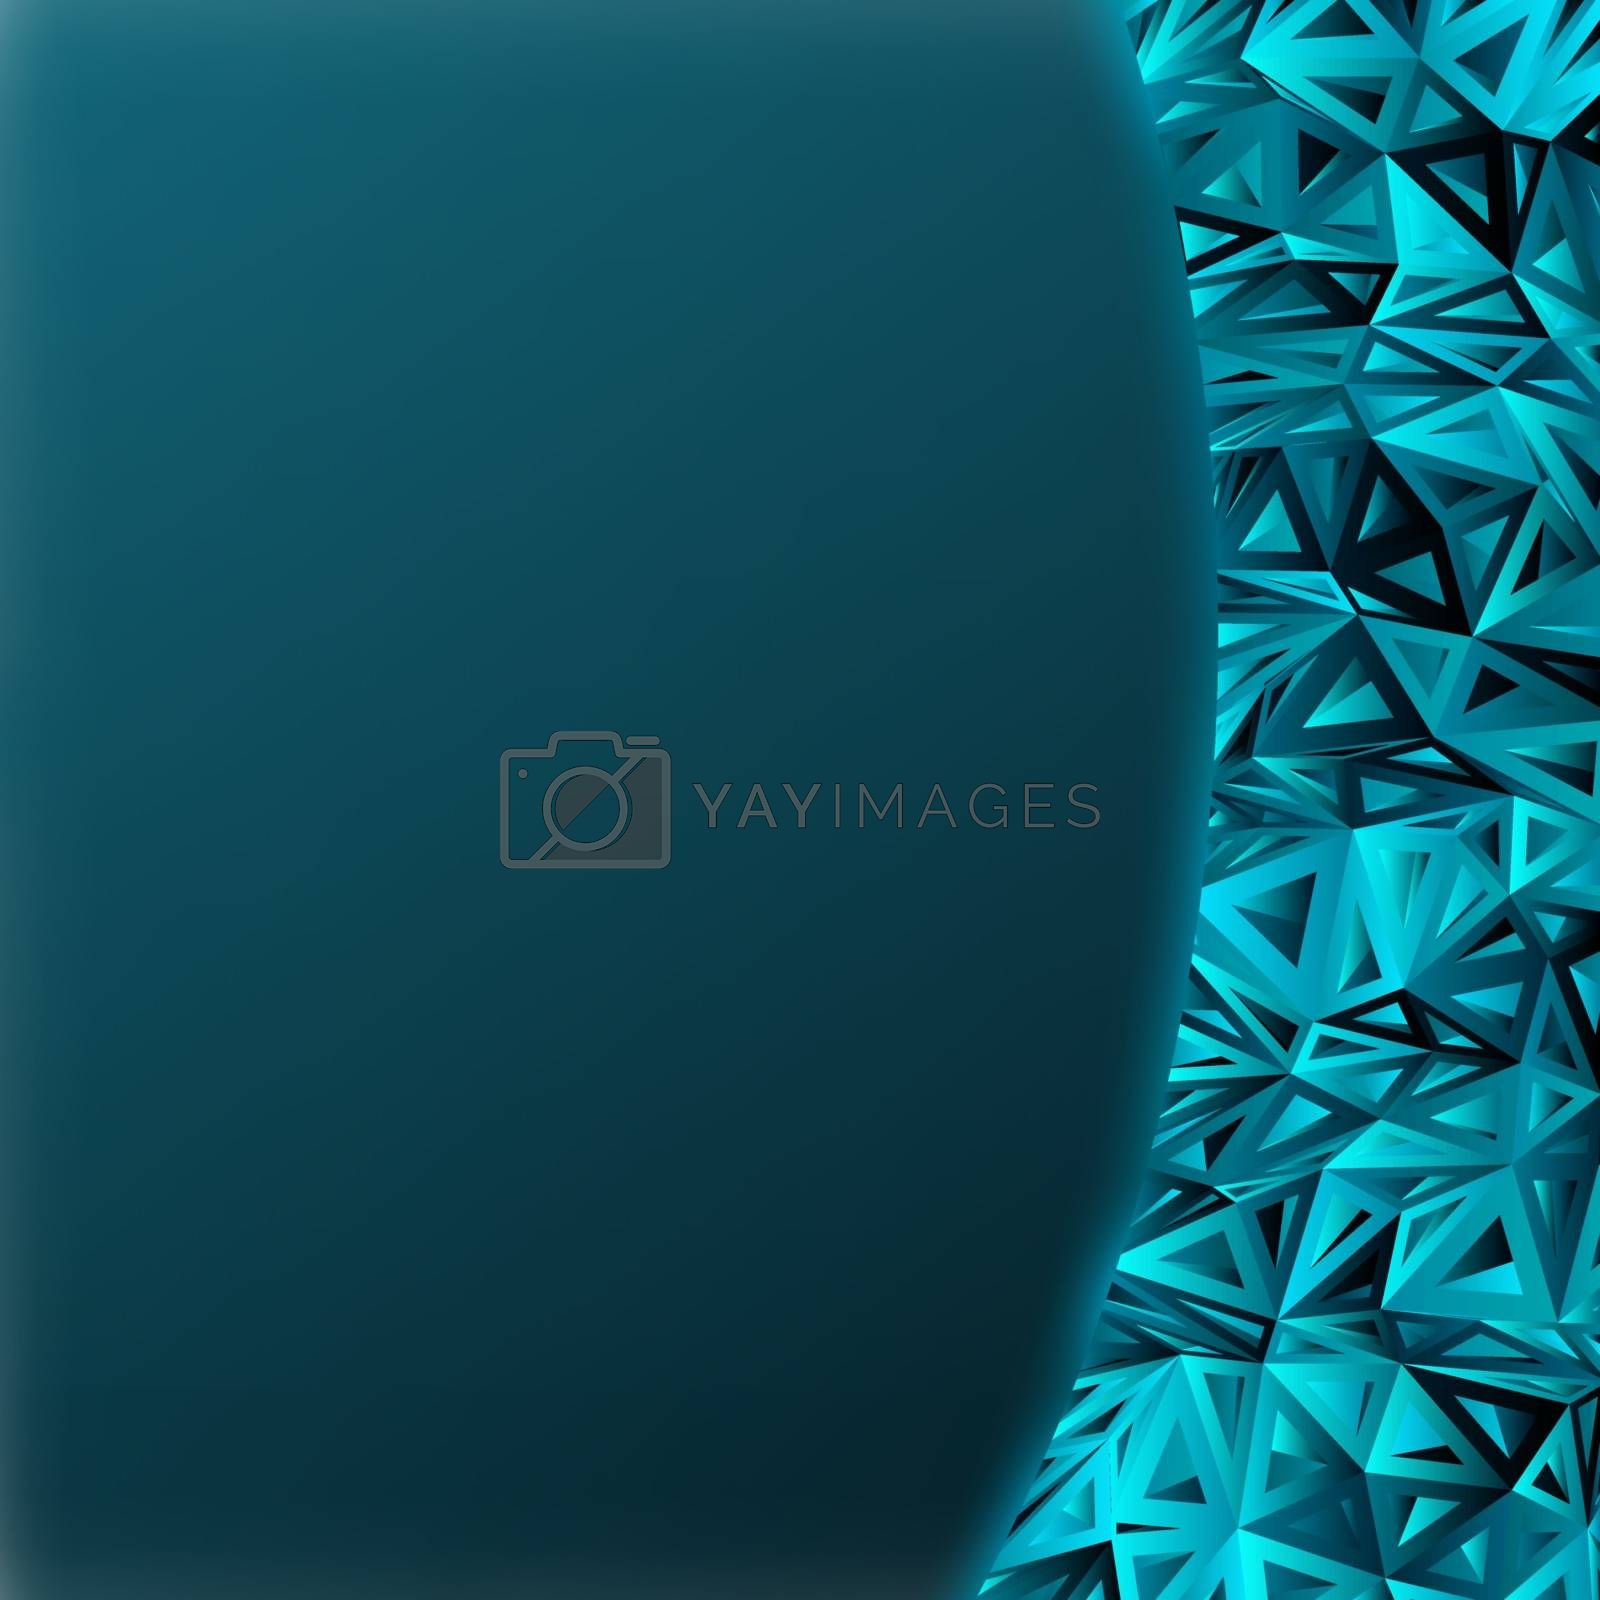 Dark blue abstract composition with copy space. EPS 8 vector file included